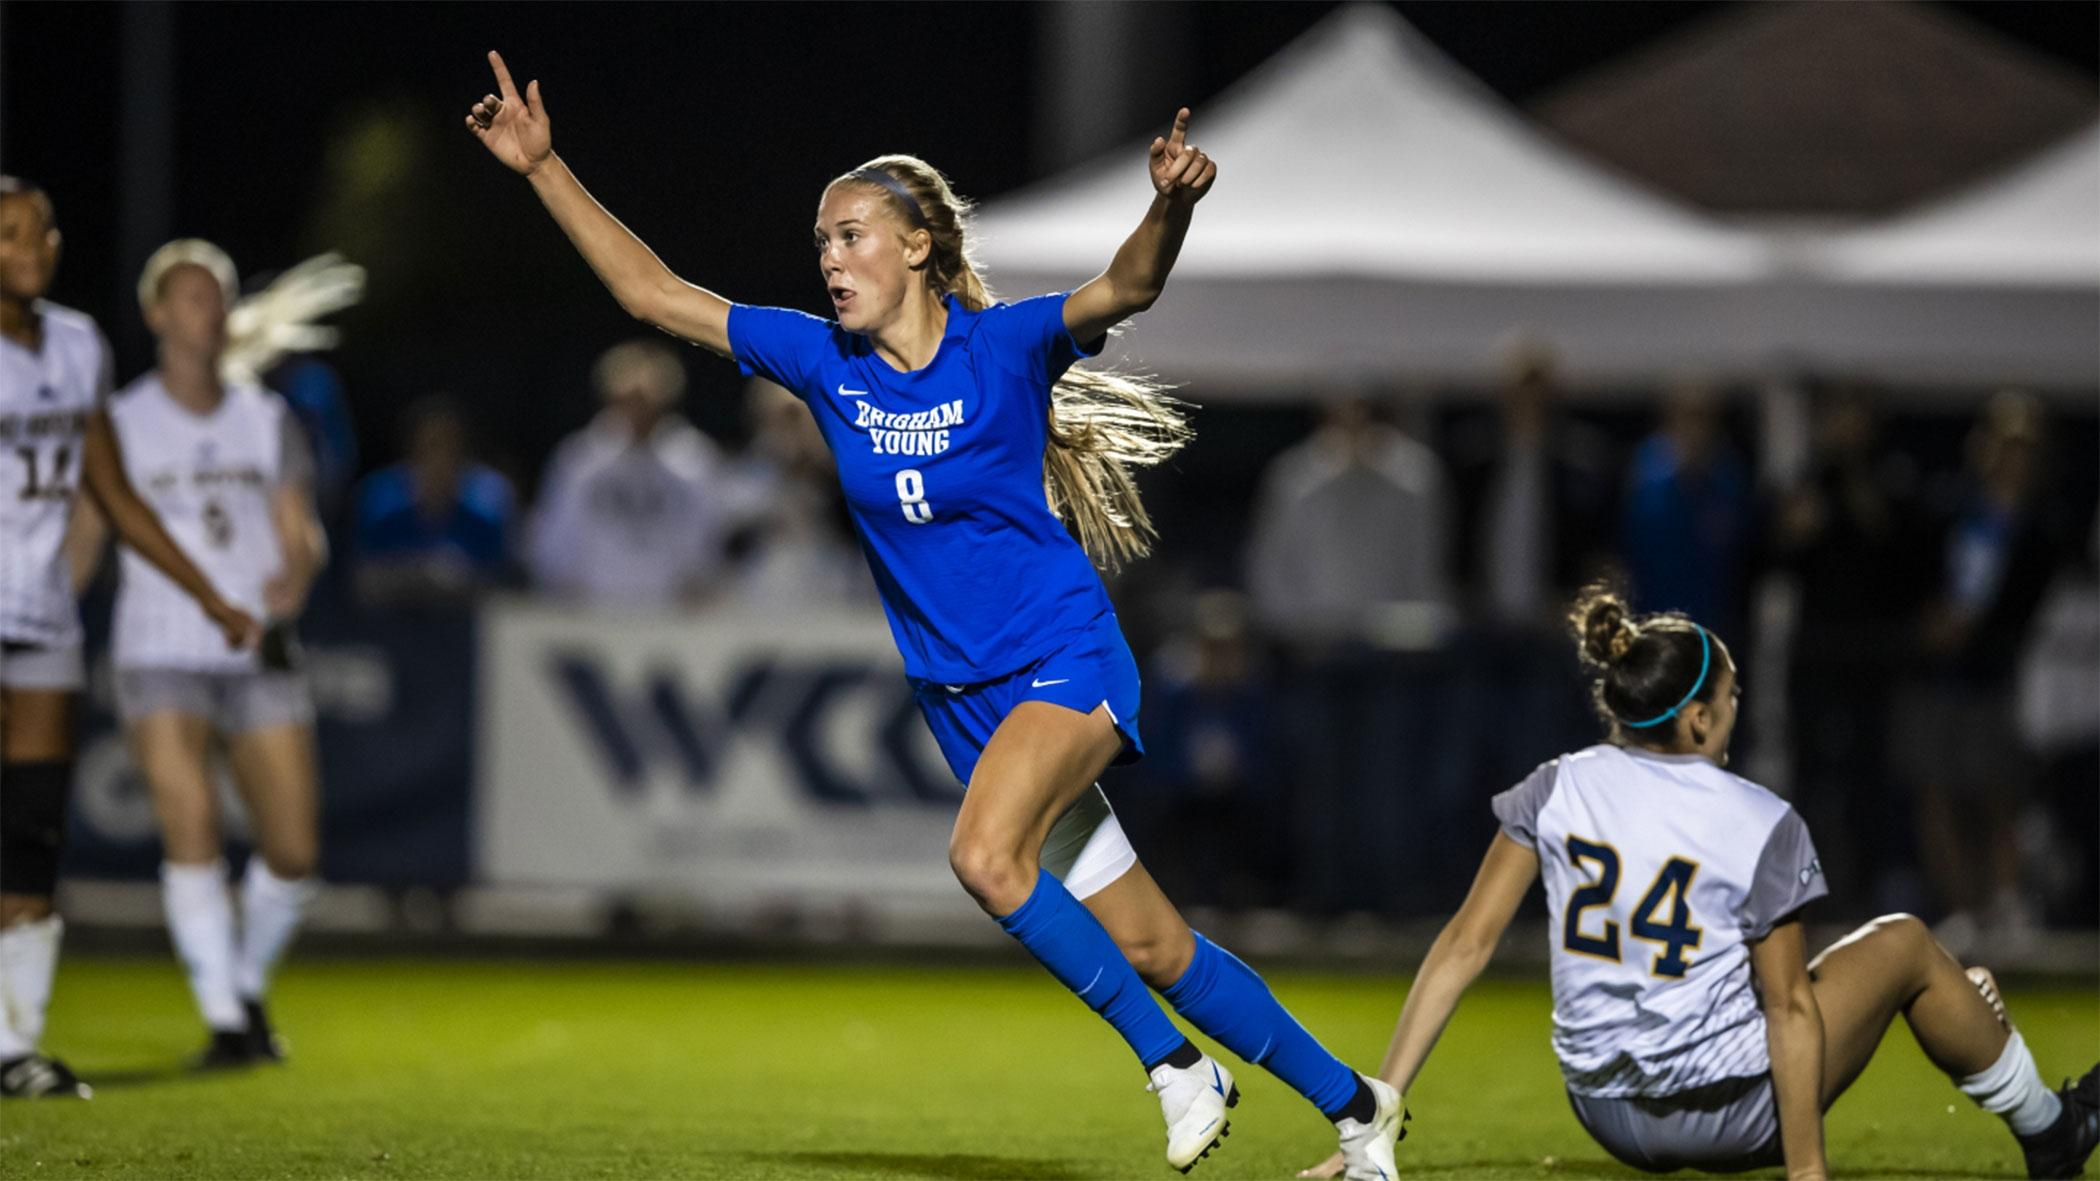 womens non conference soccer action - HD1200×800